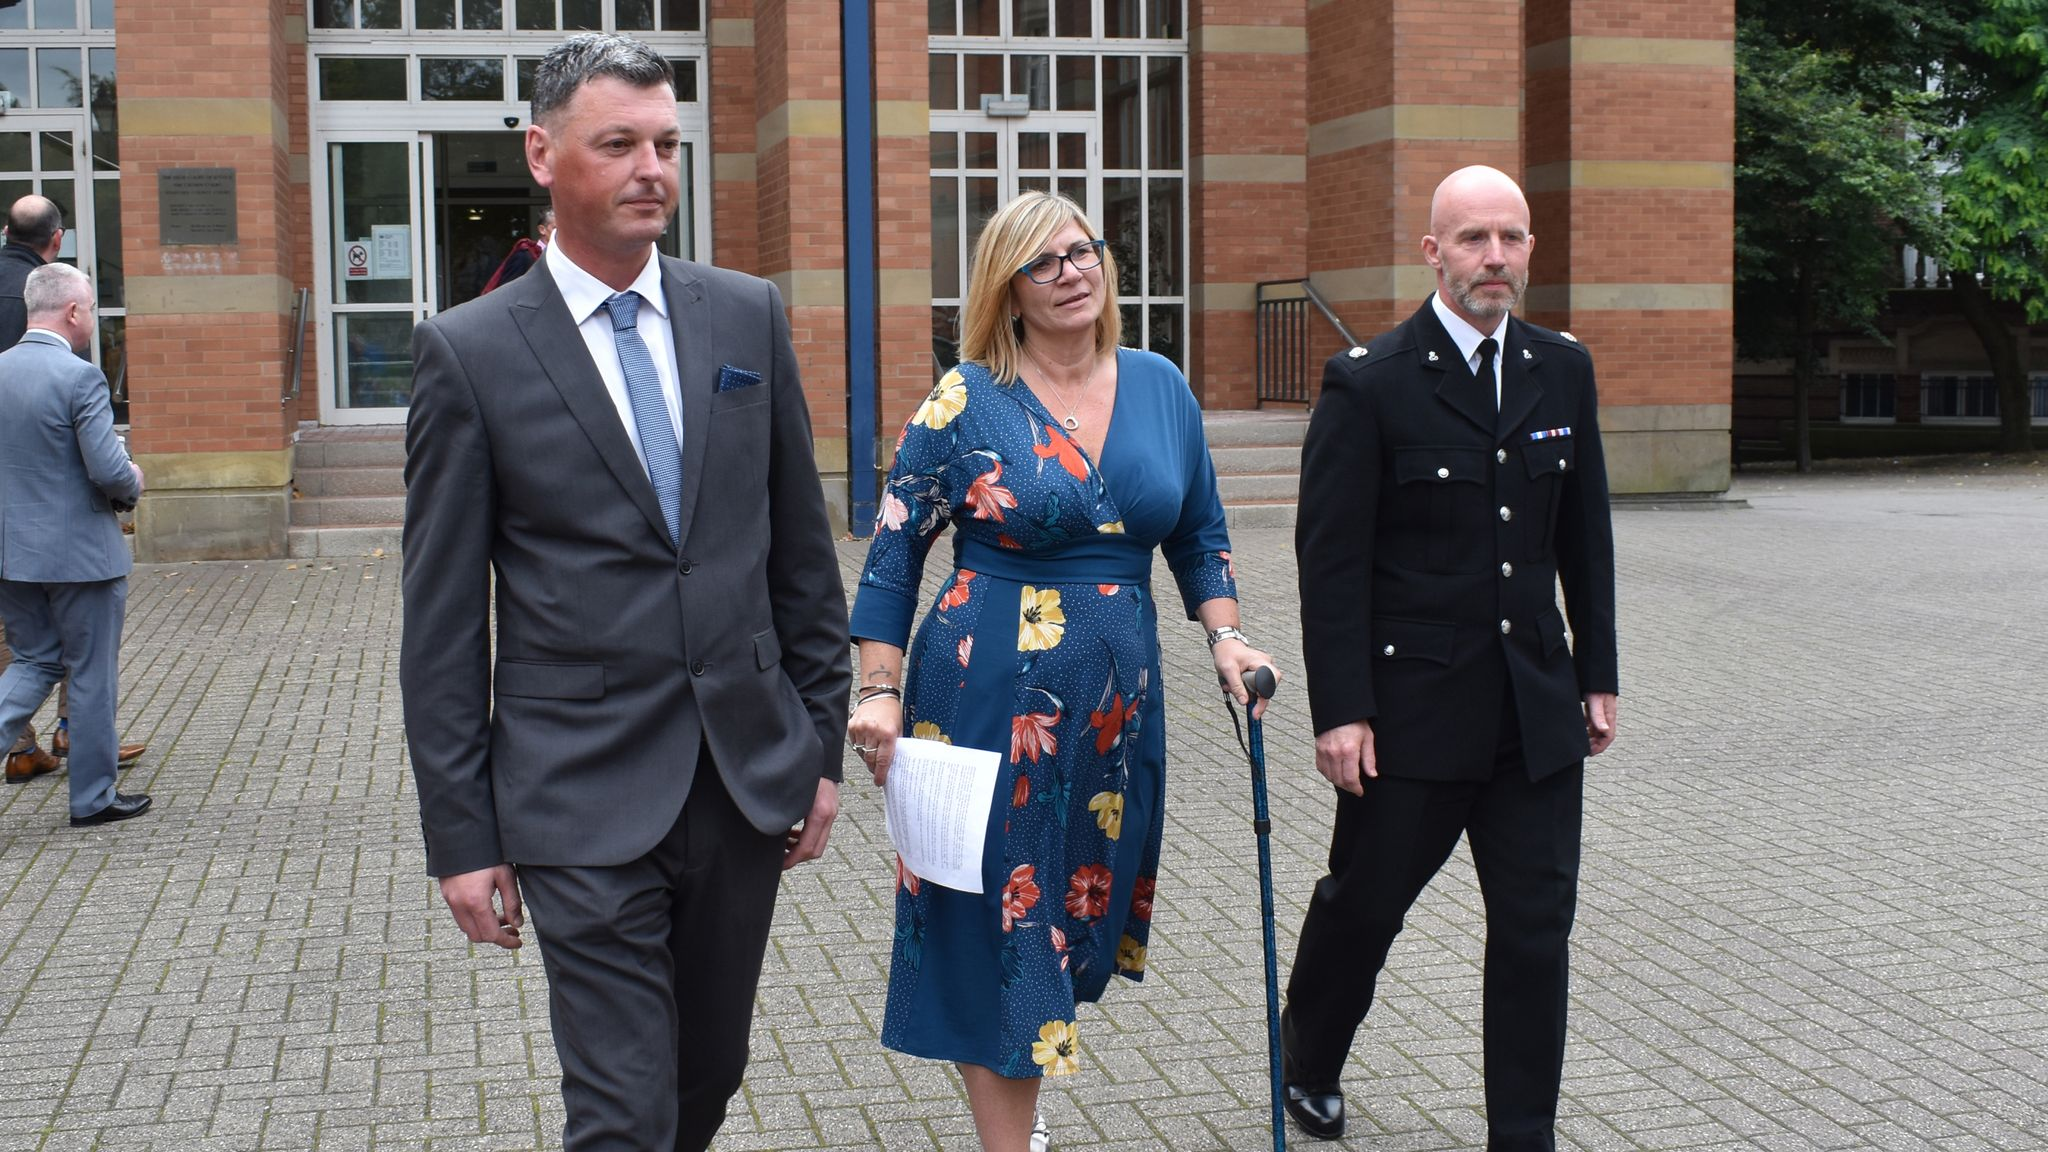 (left to right) PC Dave Mullins, PC Claire Bond and Supt Carl Ratcliffe leaving Stafford Crown Court to make a statement to the media, as a drug-dealer whose car crushed Claire Bond into a fence, causing fractures to her leg and knee, has been jailed for 12 years and nine months. PRESS ASSOCIATION Photo. Picture date: Monday September 02, 2019. Stafford Crown Court was told the police officer feared for her life and those of runners taking part in a nearby 10-kilometre road race, as she was thrown to the ground by banned driver Gurajdeep Malhi's rented BMW. See PA story COURTS Stafford. Photo credit should read: Matthew Cooper/PA Wire